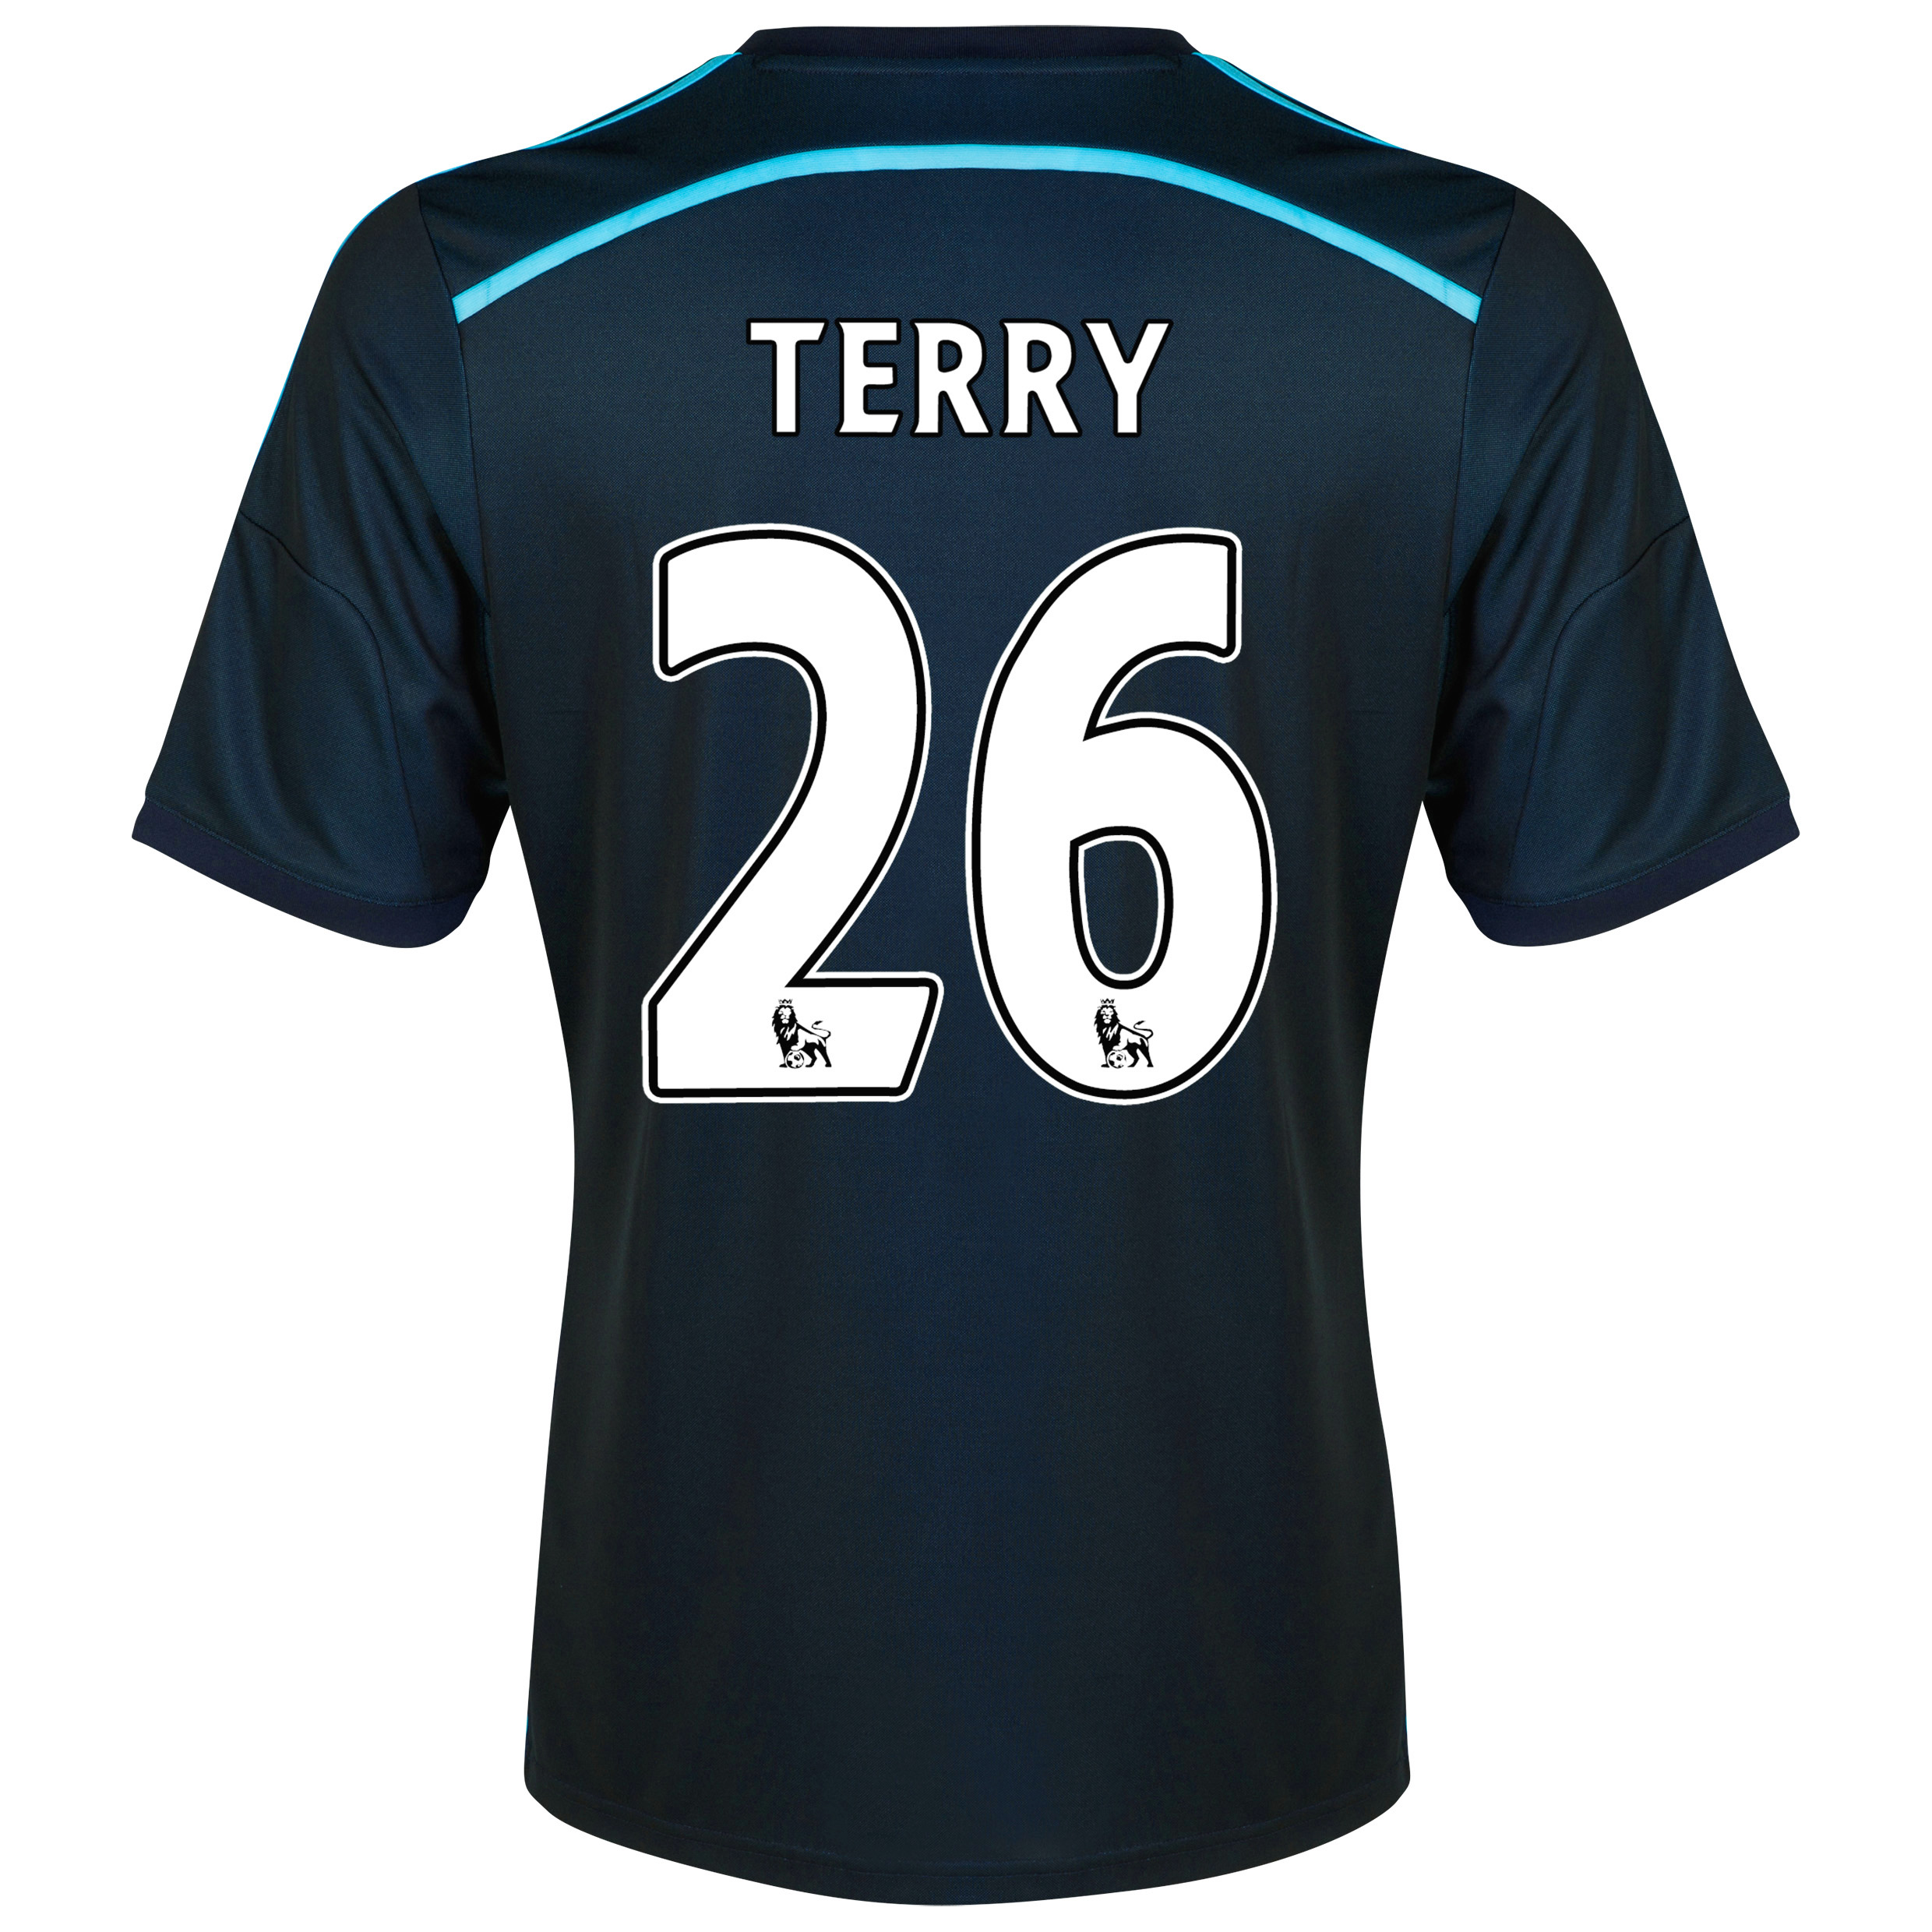 Chelsea Third Shirt 2014/15 with Terry 26 printing